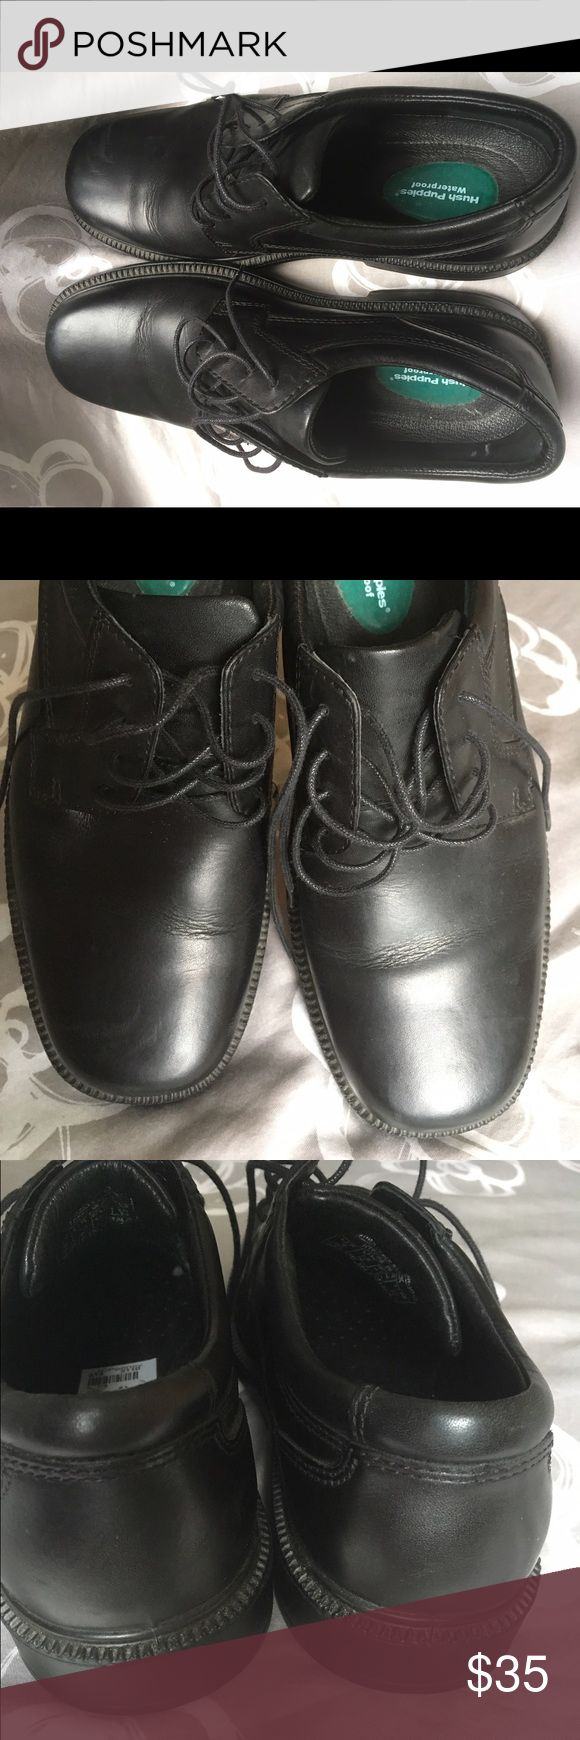 Hush puppies men shoes Black men shoes hush puppies. Used once. Free smoke home. Hush Puppies Shoes